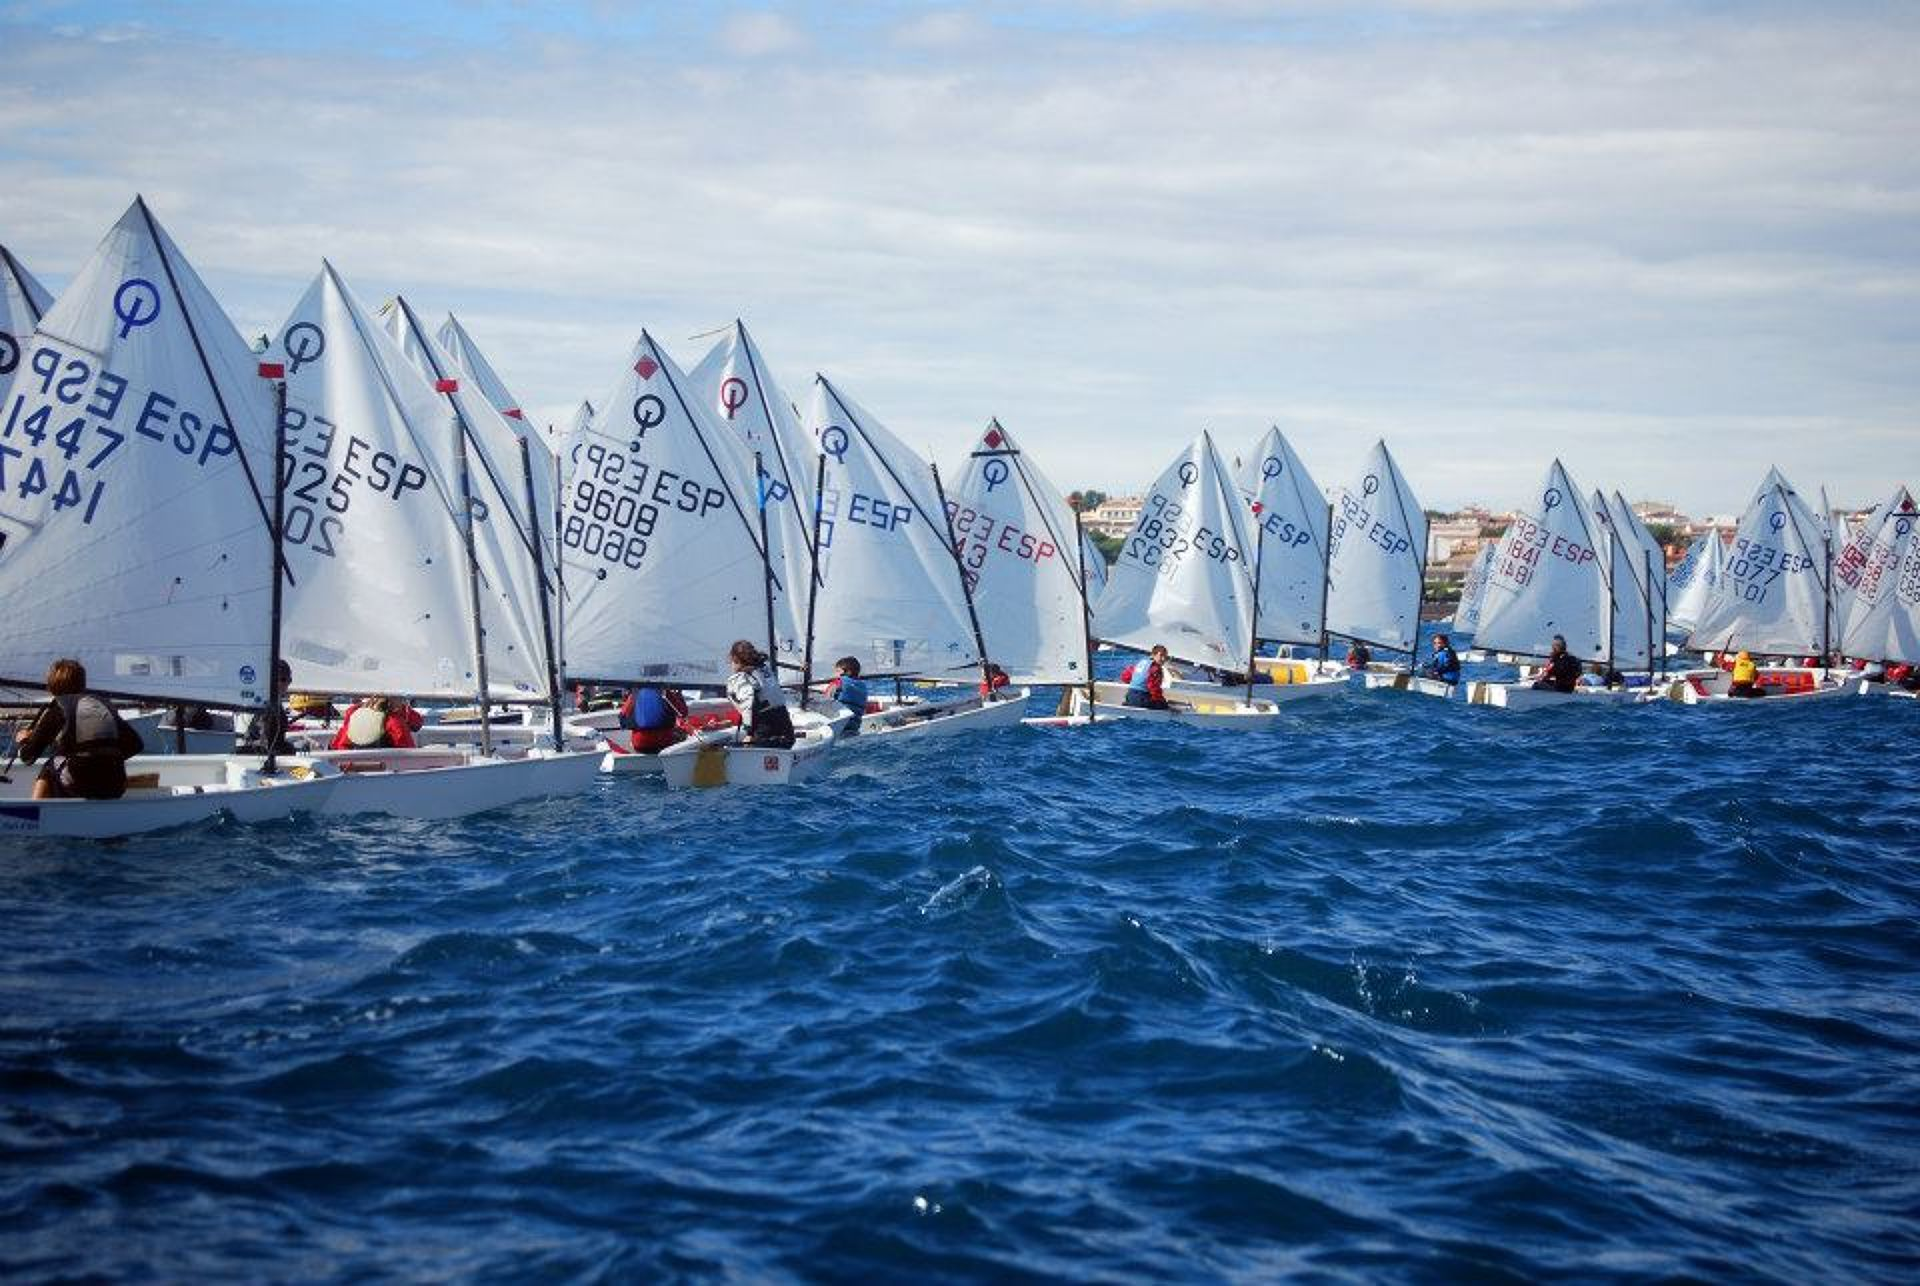 Participació del CVB a la primera regata del Circuit Català Optimist 2014-2015